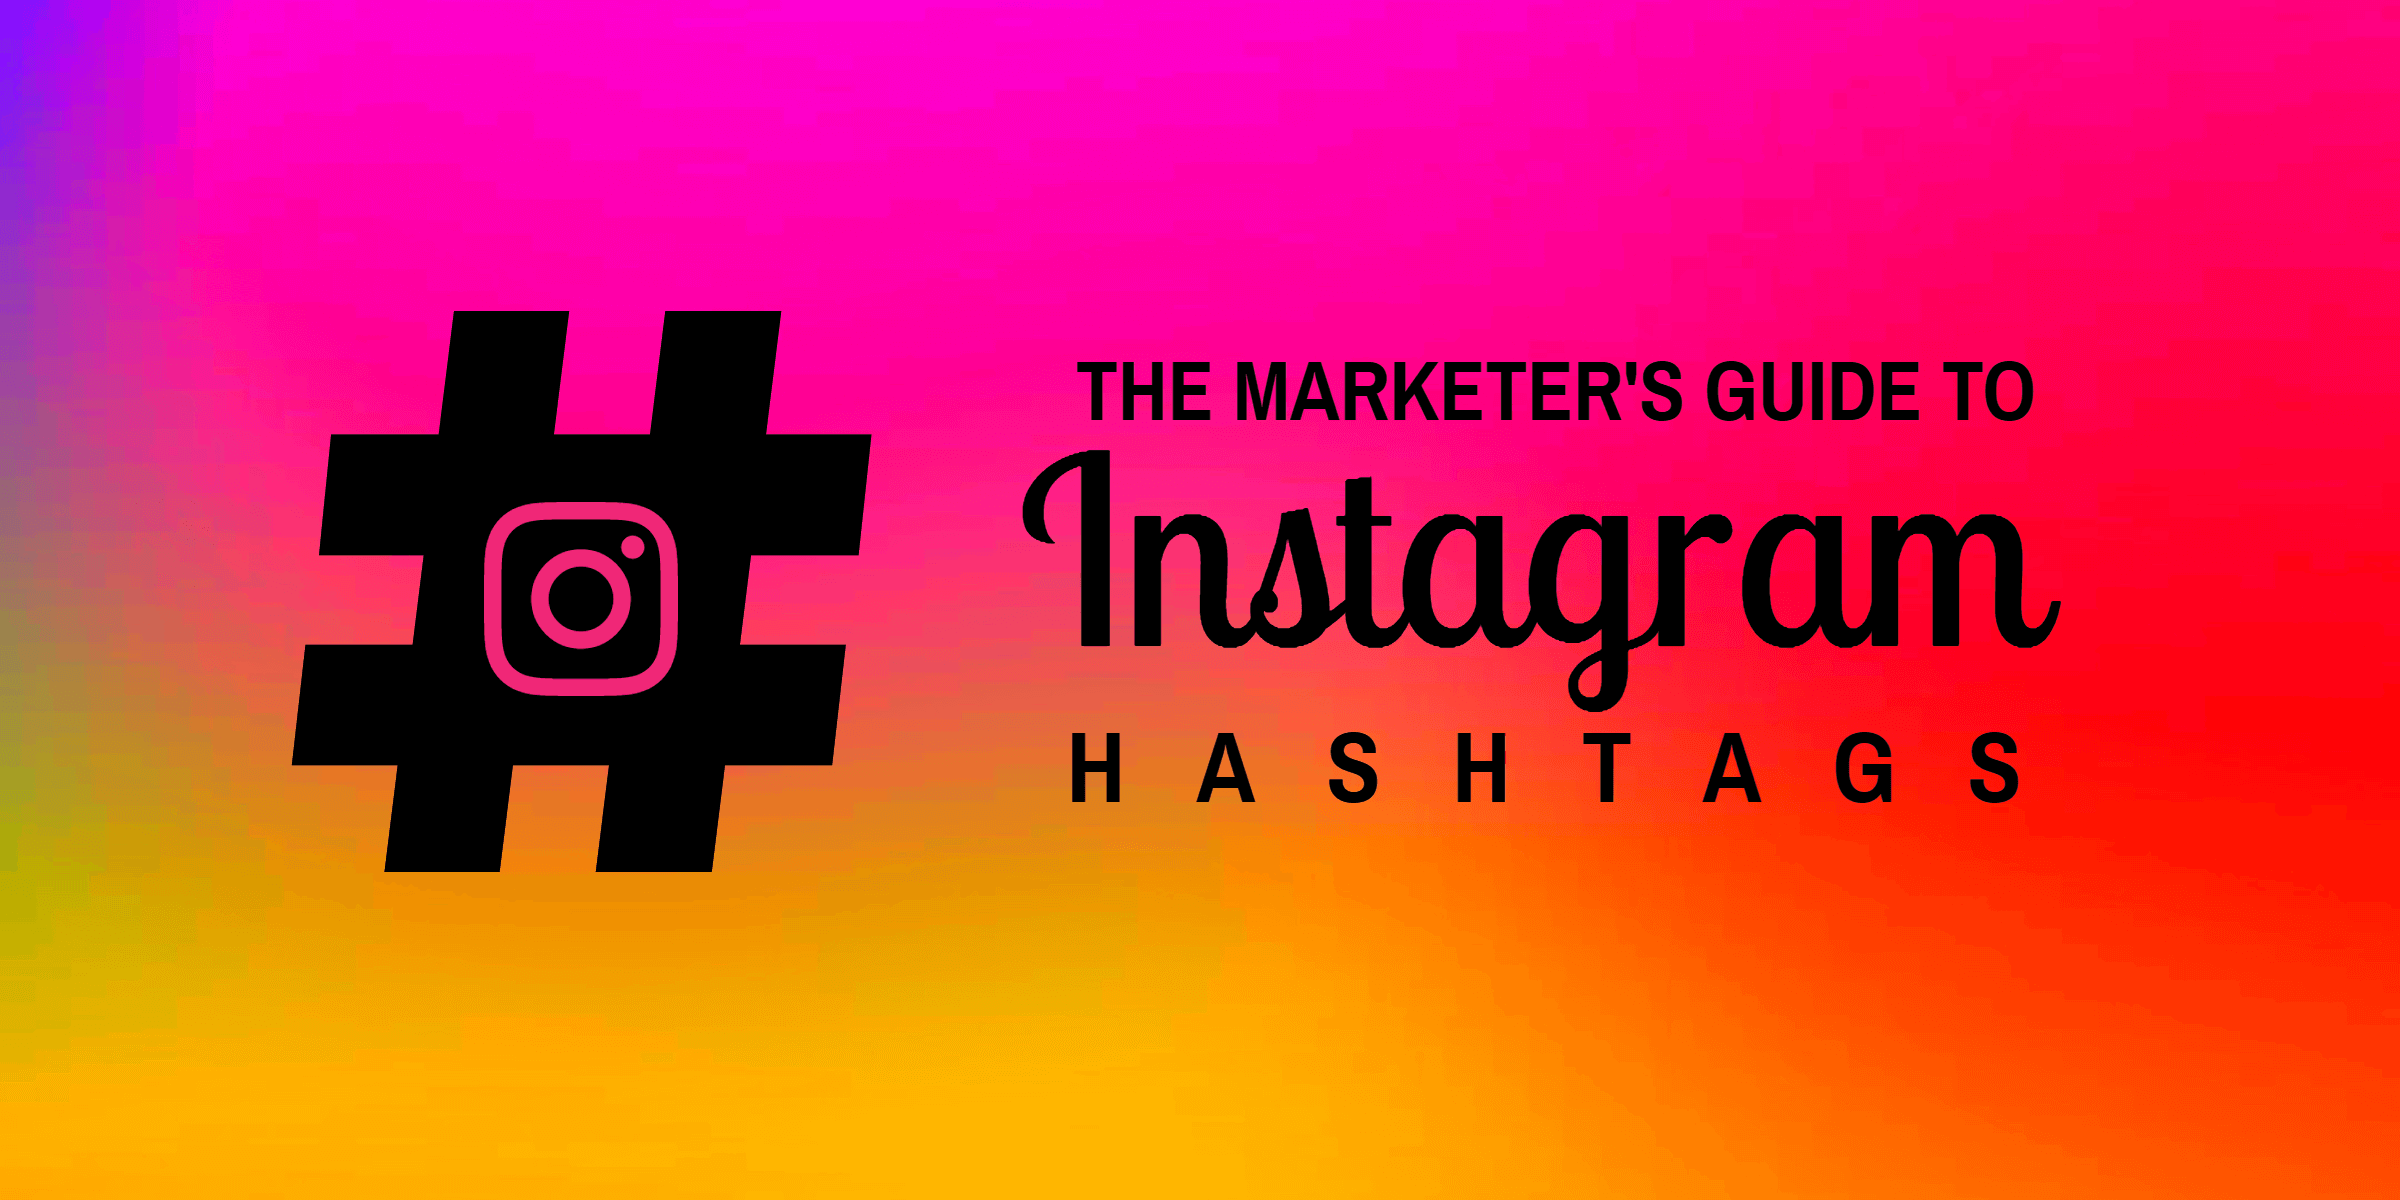 The marketer's guide to Instagram hashtags